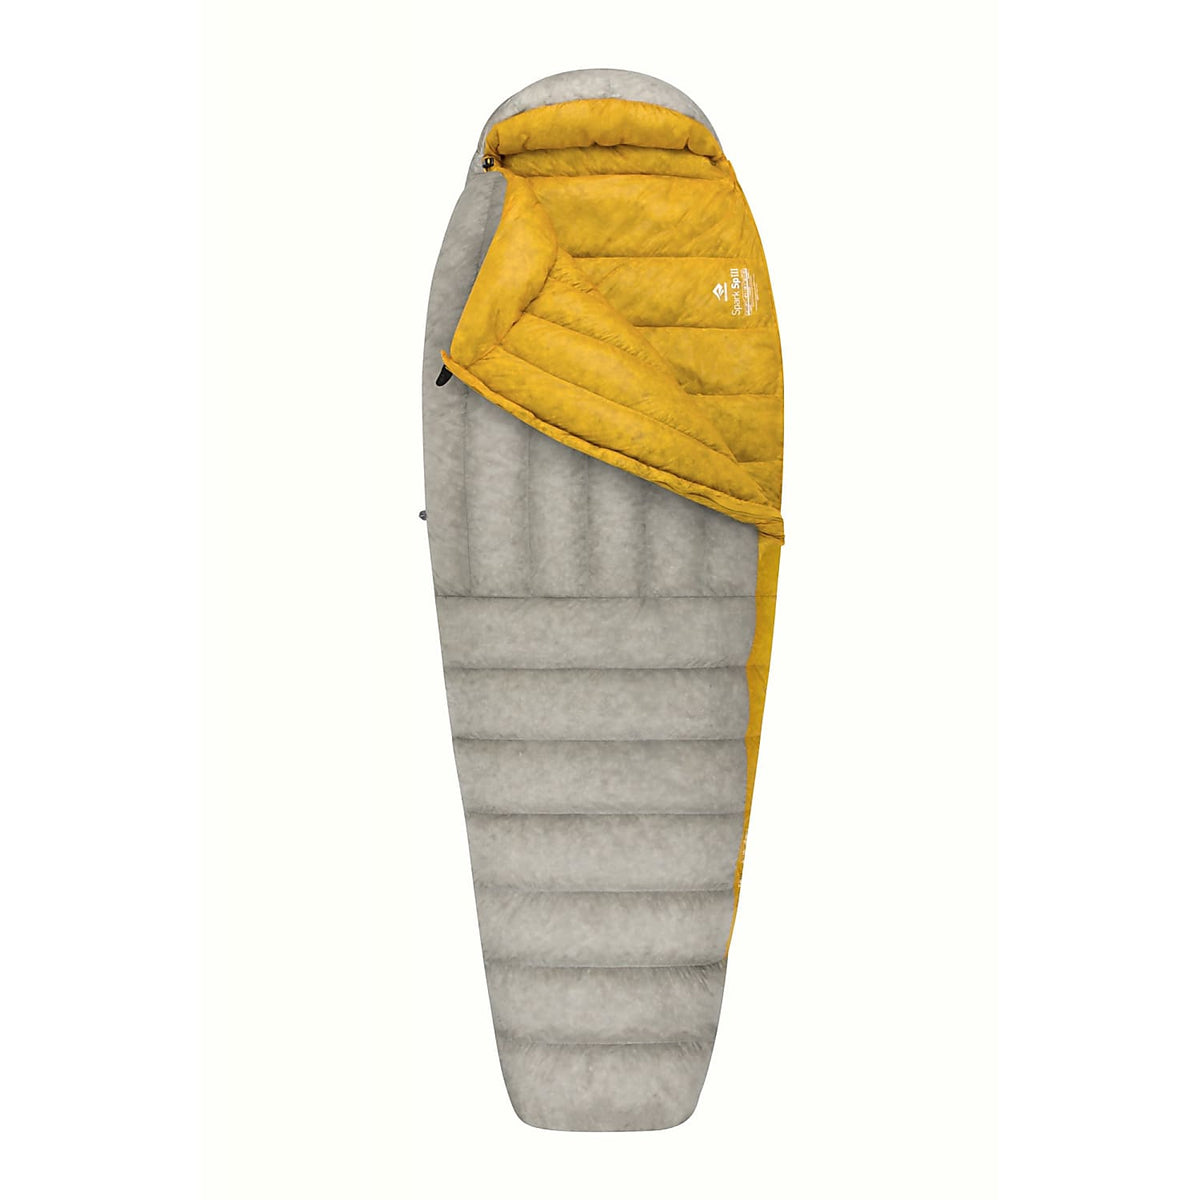 Sea to Summit Spark III sleeping bag shown partially open